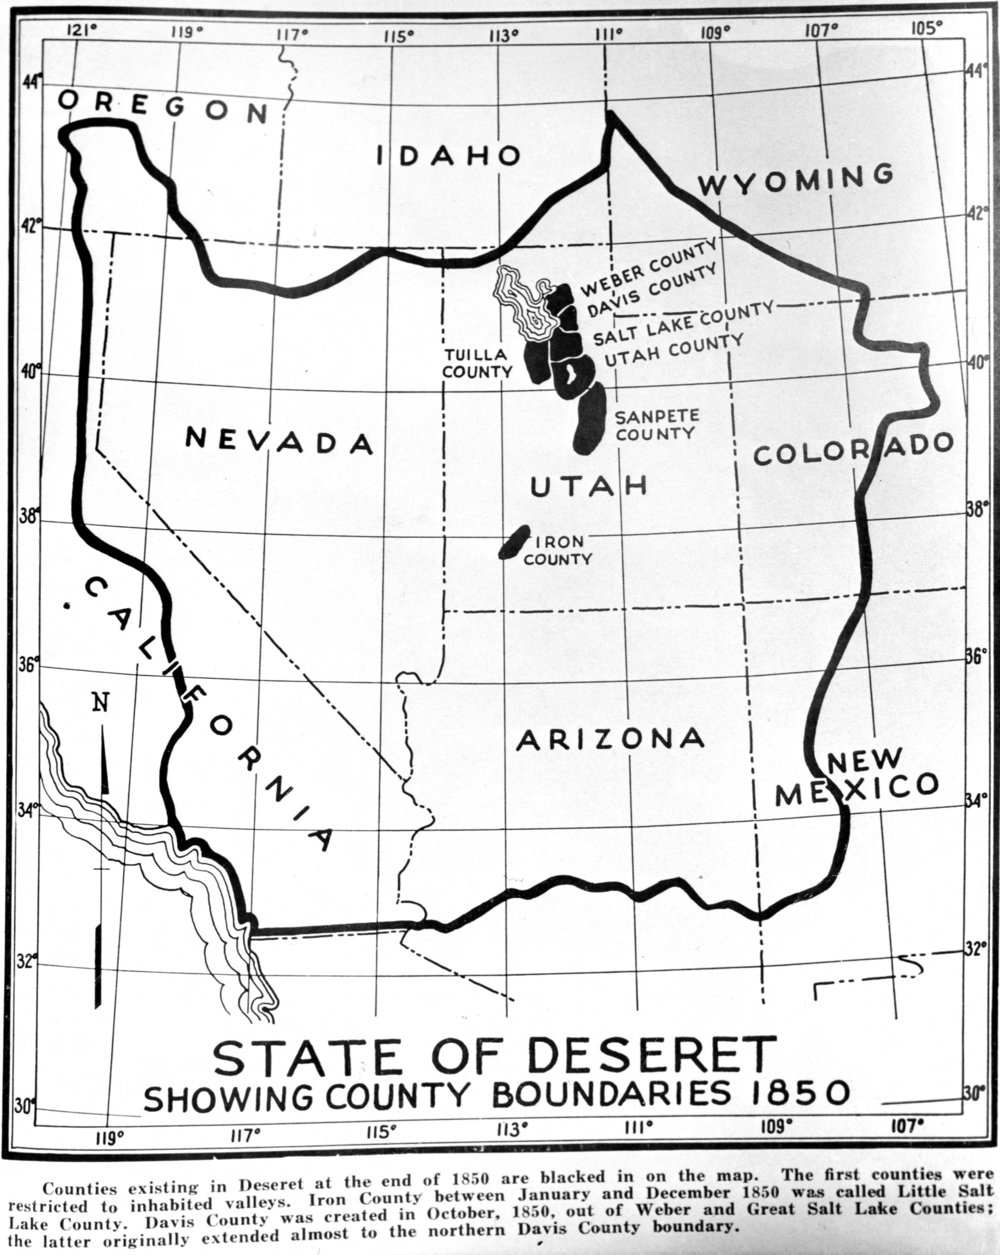 Utah's hilarious 1849 attempt to incorporate most of the interior west within the boundaries of the State of Deseret. Image courtesy of the Utah State Historical Society.